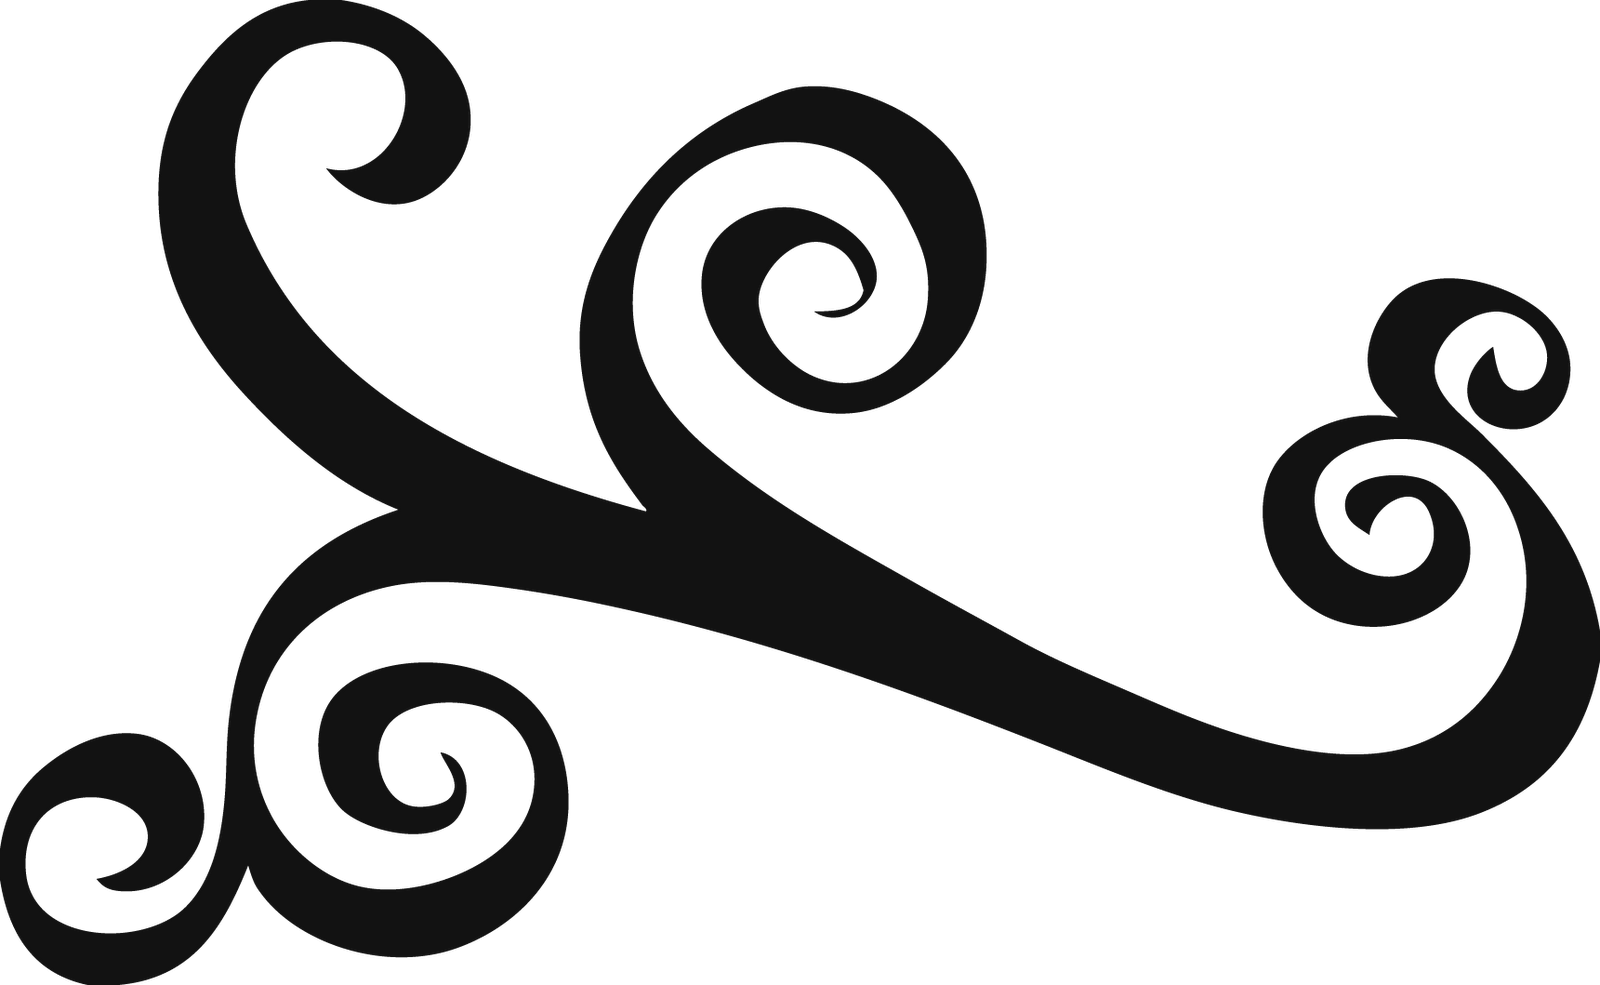 clipart freeuse library Simple Filigree Scroll Designs